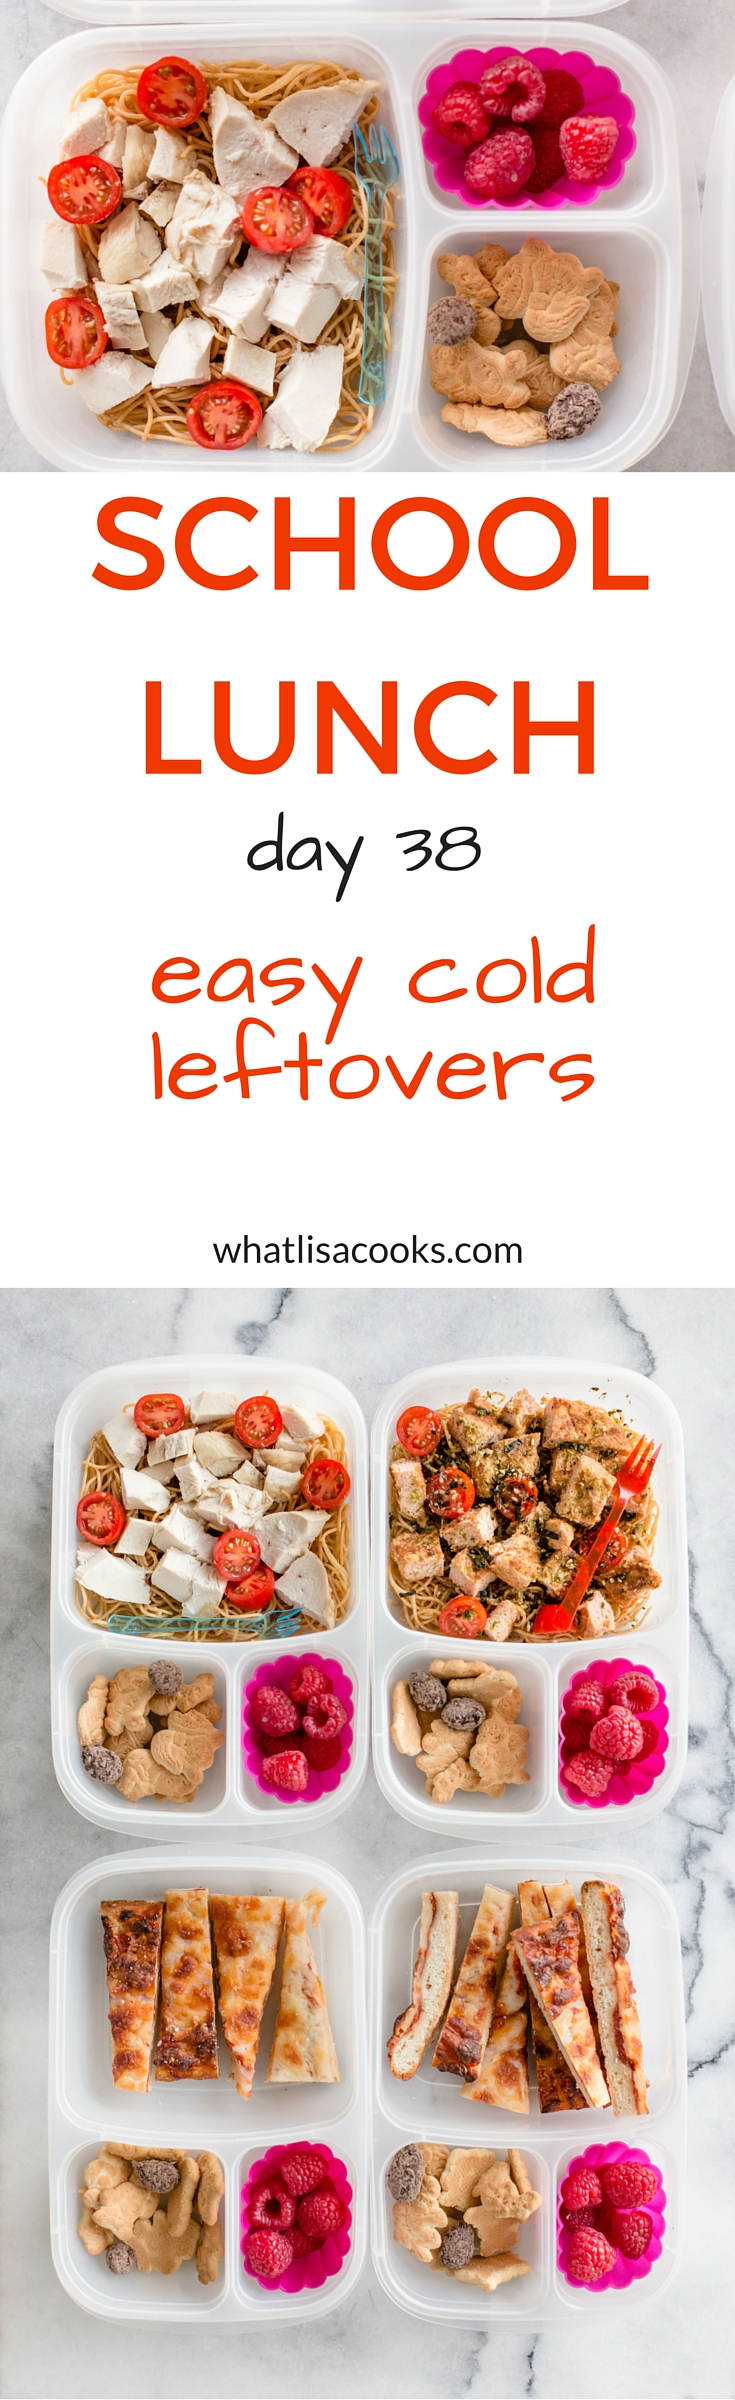 Easy packed school lunch: send them with leftovers to be eaten cold.  WhatLisaCooks.com